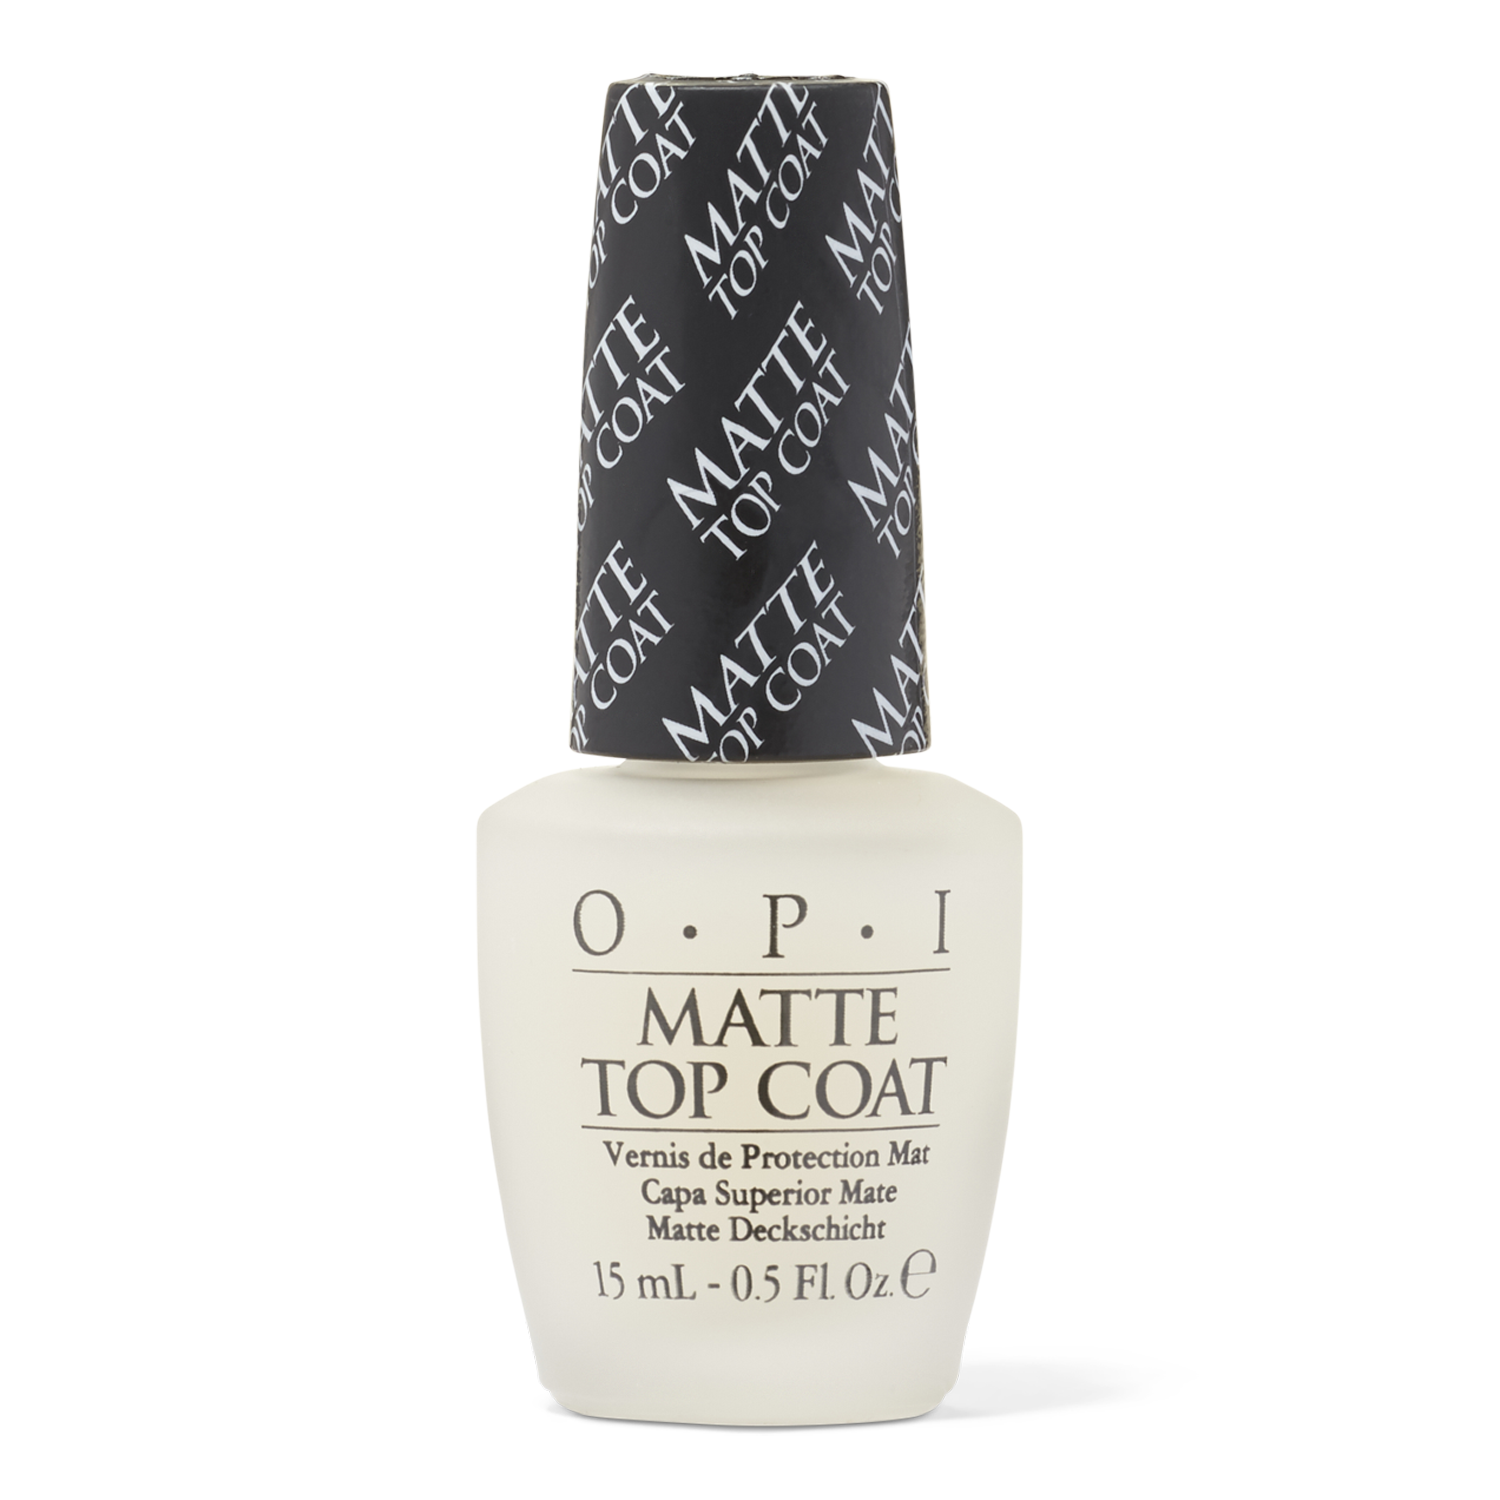 opi matte top coat opi matte top coat 30593